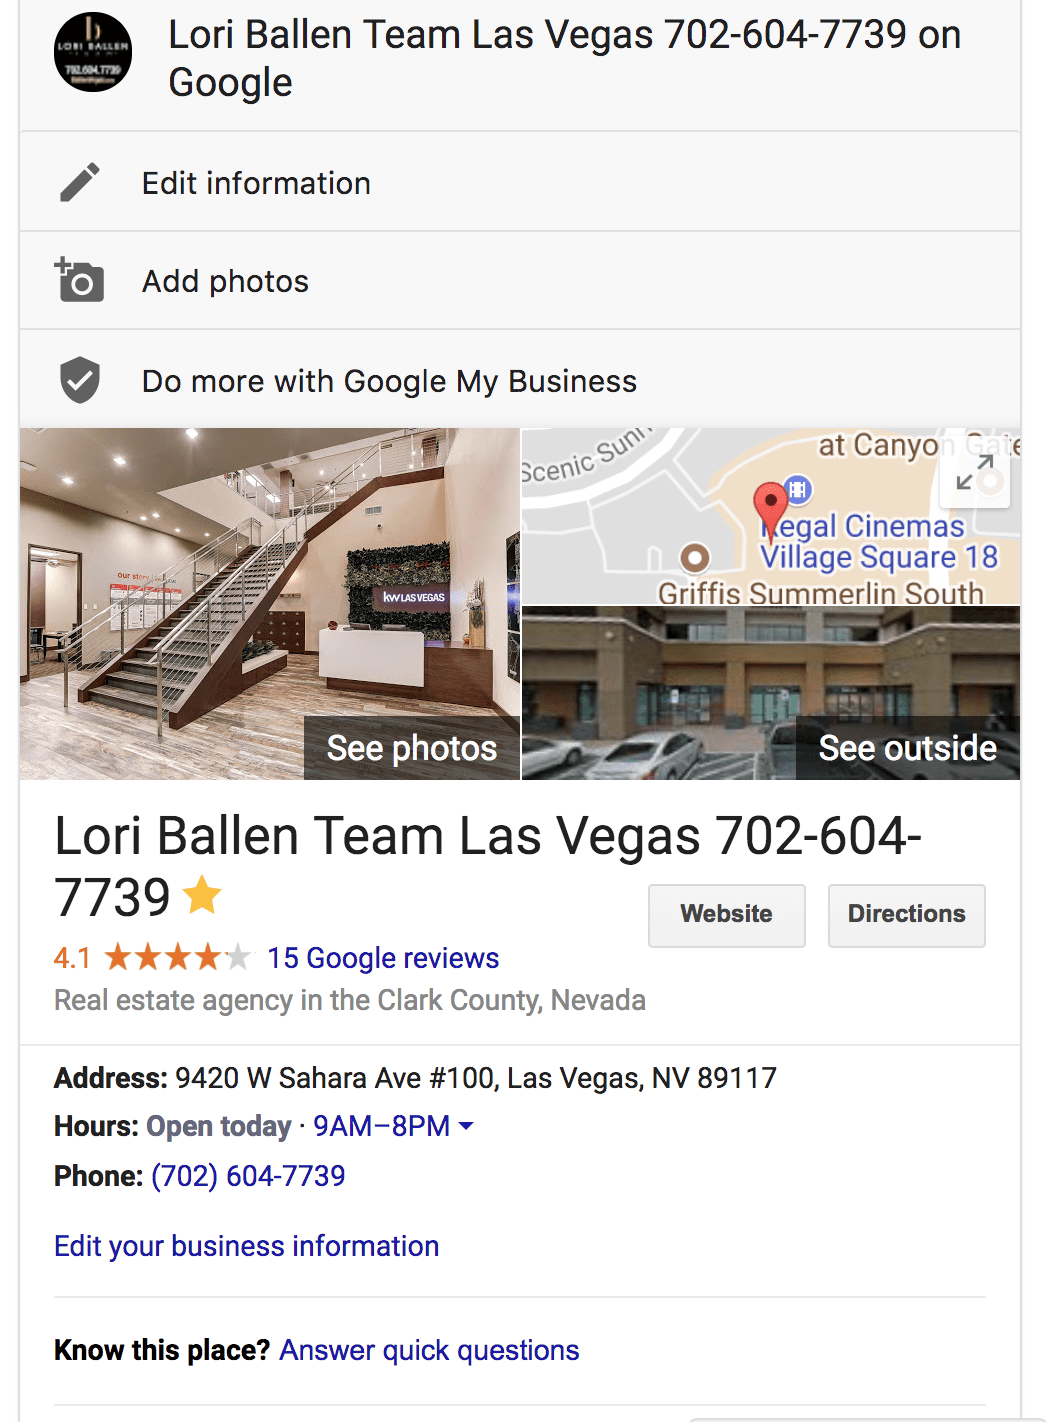 Google My Business Local Pack Profile Box on Google SERP can be edited from the page